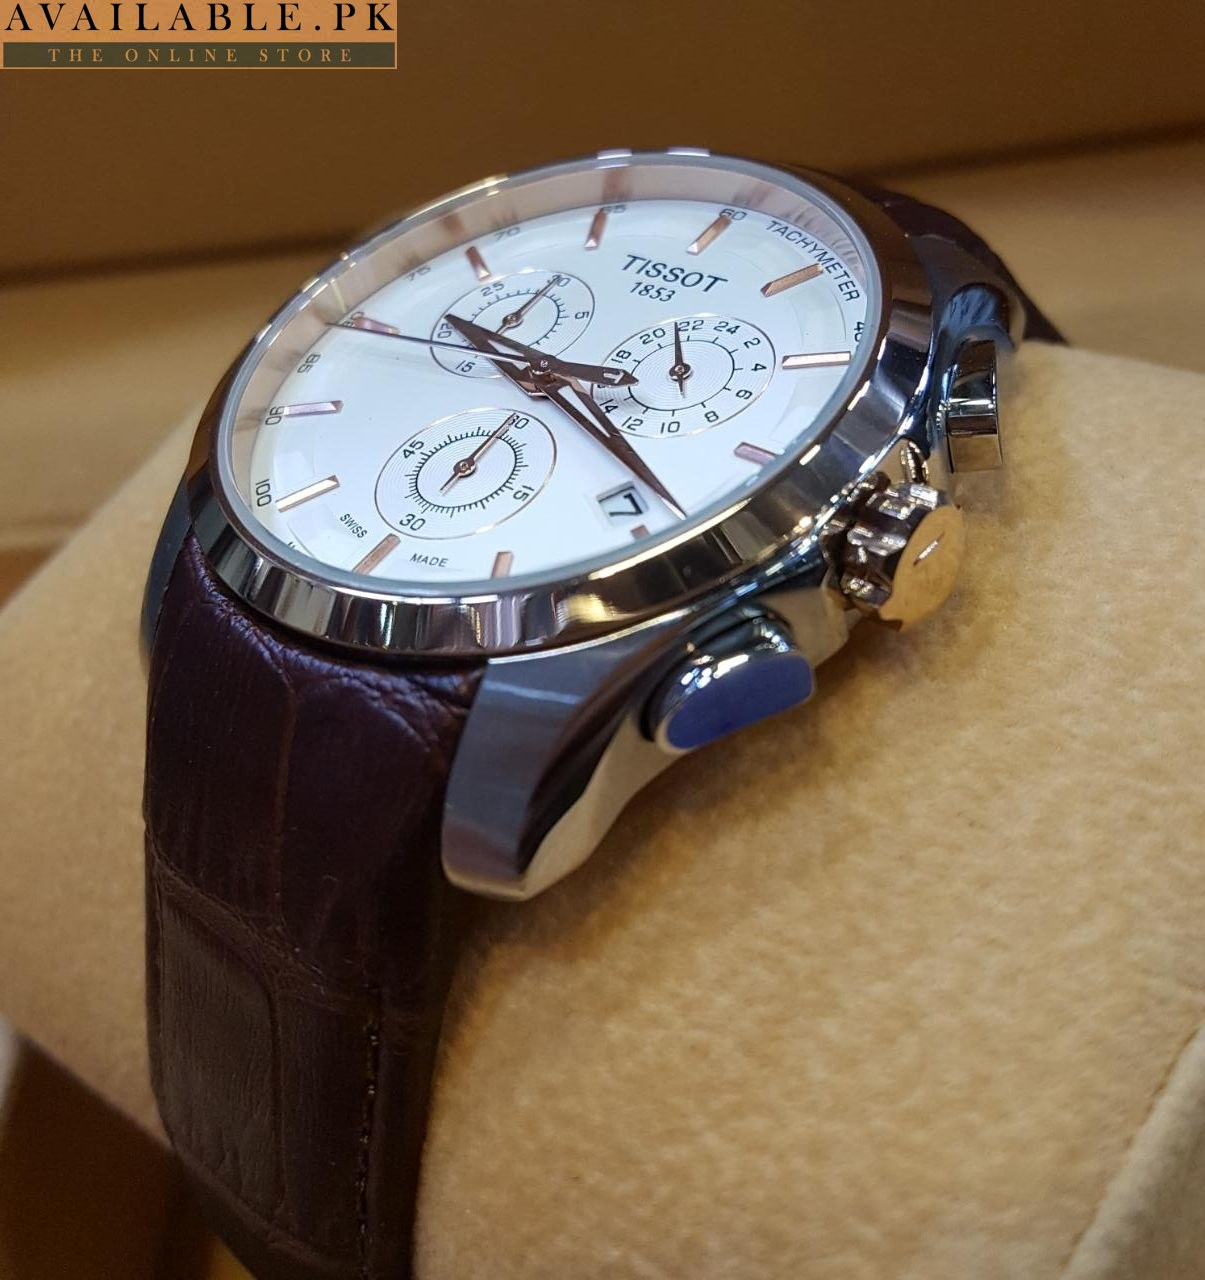 stunning outfitters watches price in pakistan today